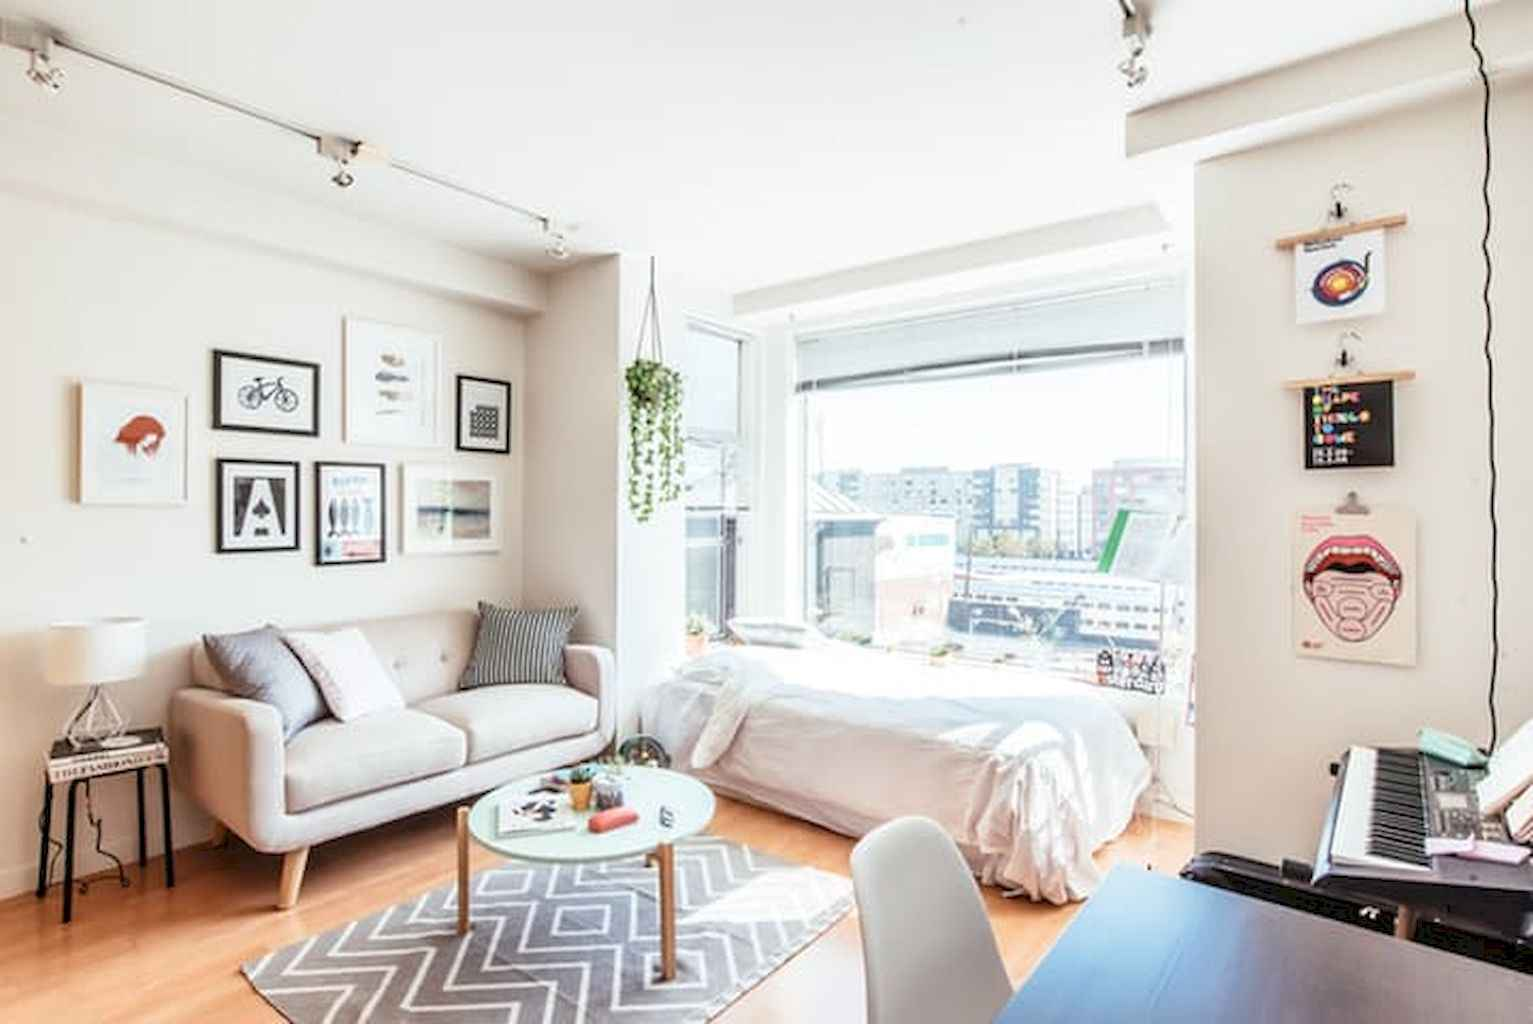 Cool small apartment decorating ideas on a budget (48)